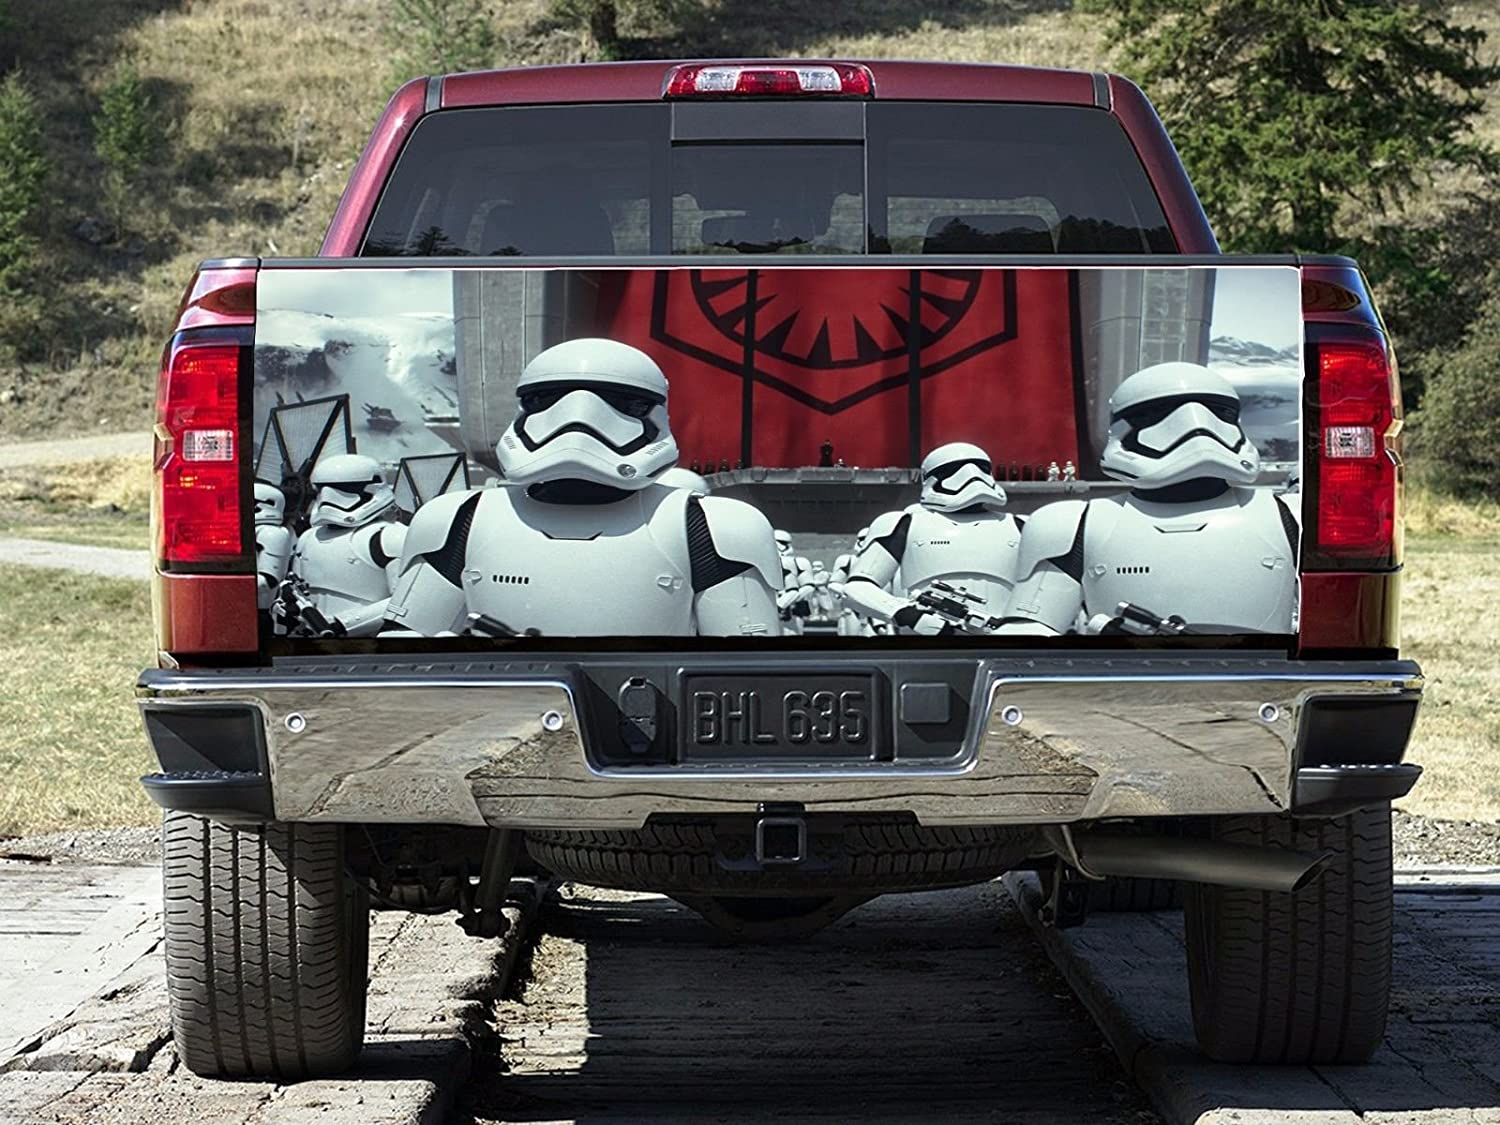 Star Wars Stormtroopers Tailgate Wrap, Truck Decal, Tailgate Sticker, Tailgate Car Design, Tailgate Truck Decor gc2377